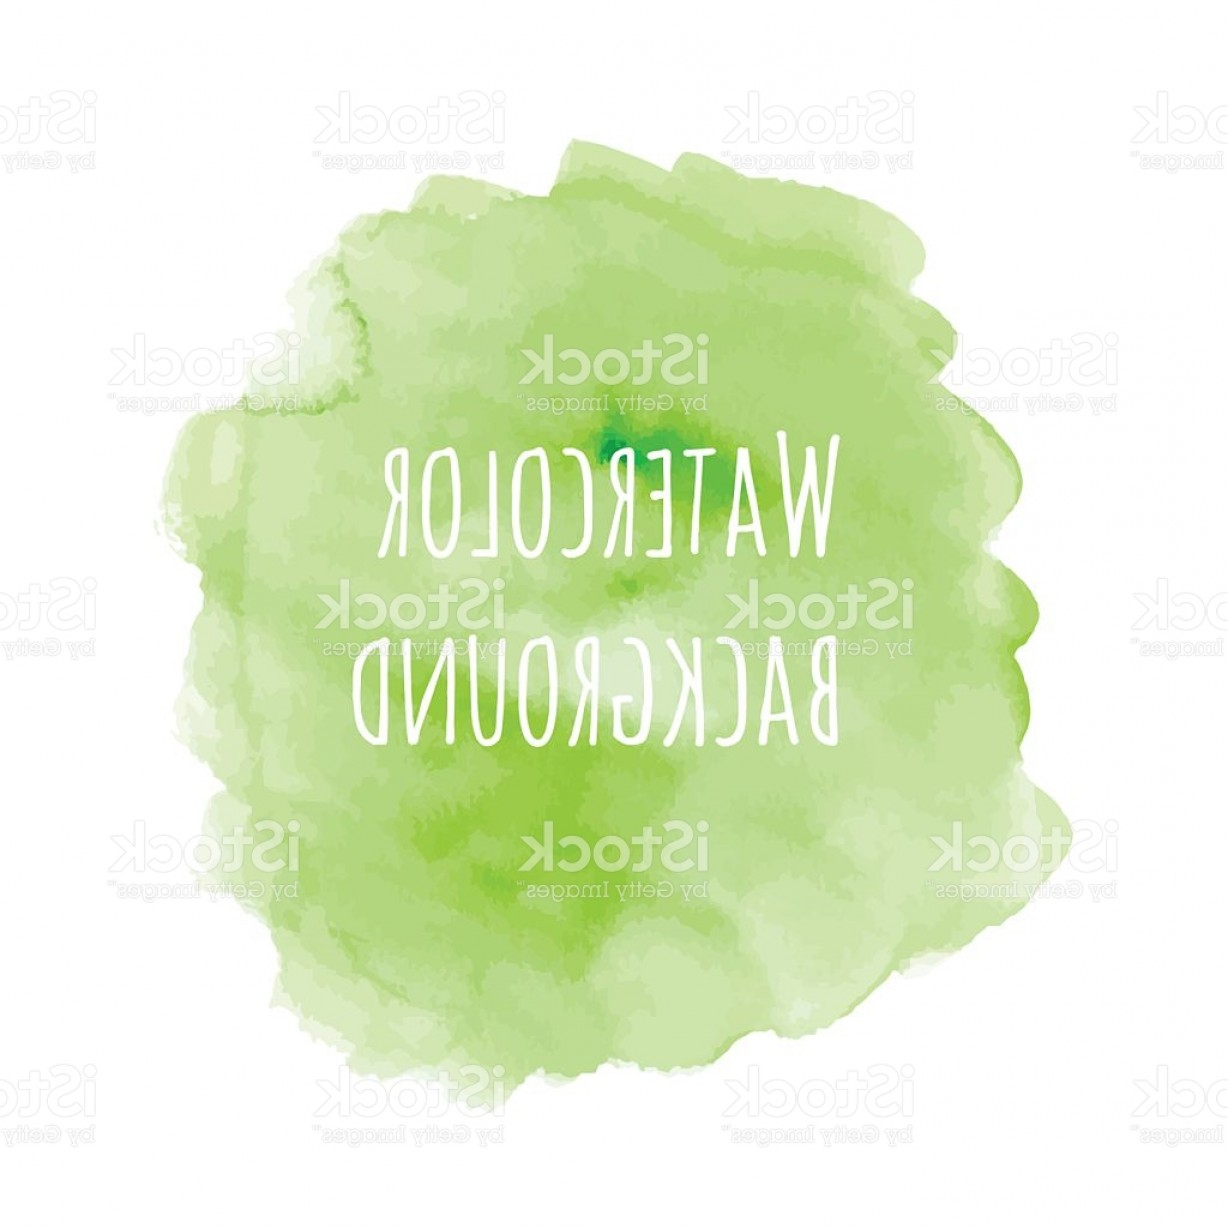 Watercolor Vector Background Free: Watercolor Vector Background For Design Gm